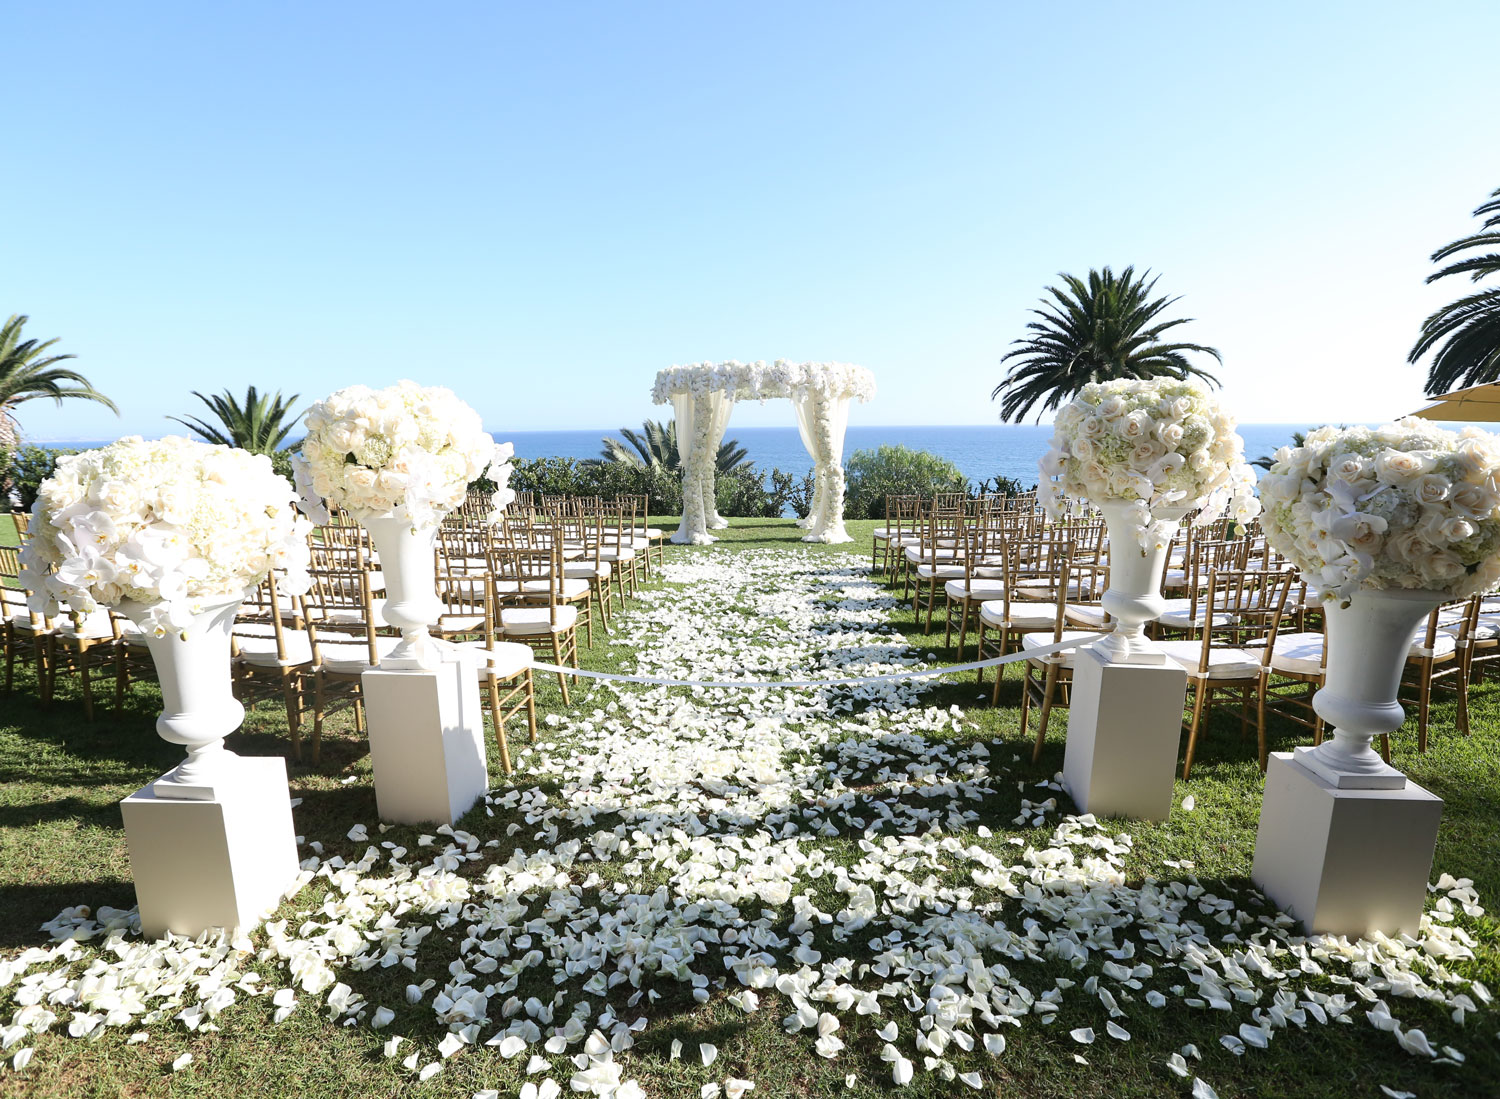 White flowers at outdoor wedding ceremony by ocean